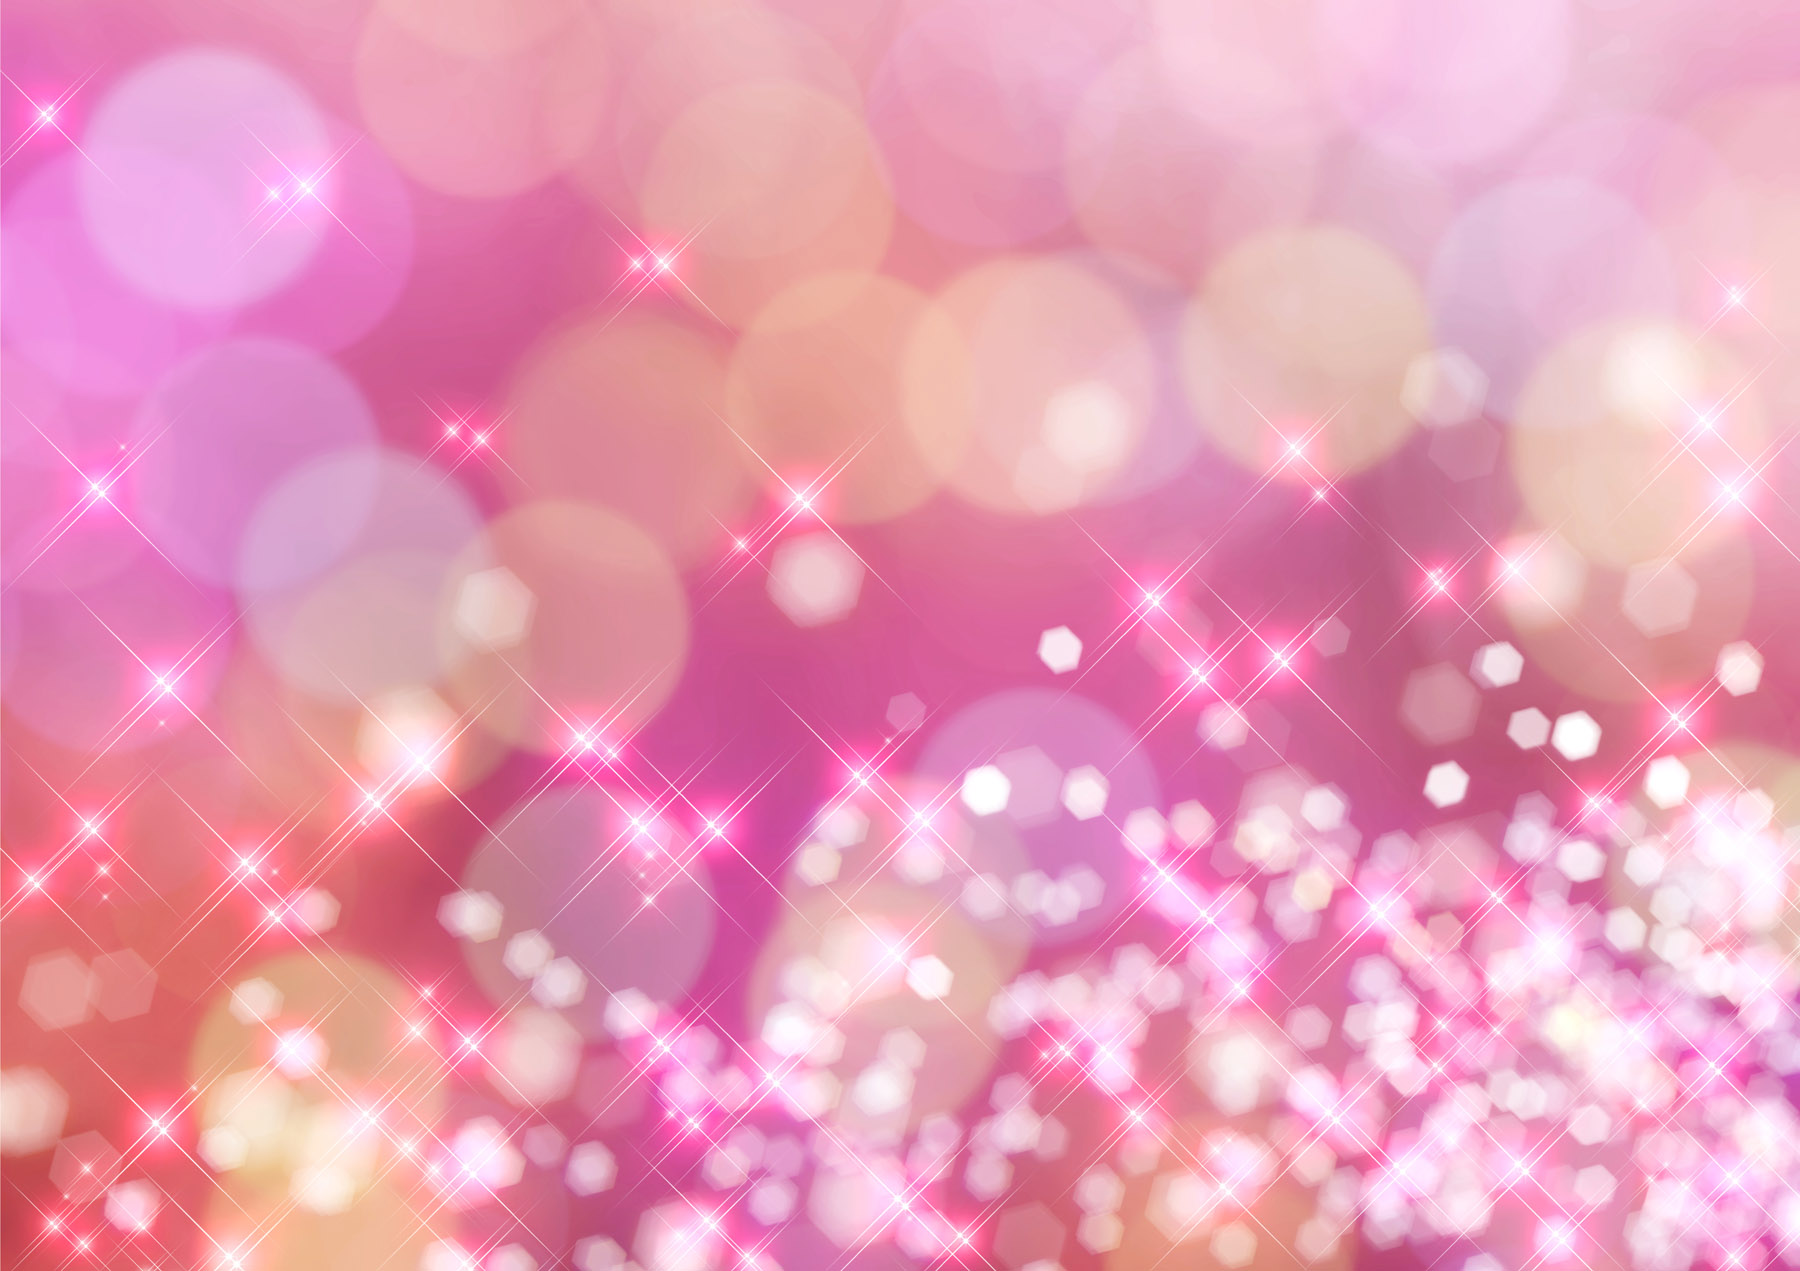 Gorgeous bright colorful background 26215